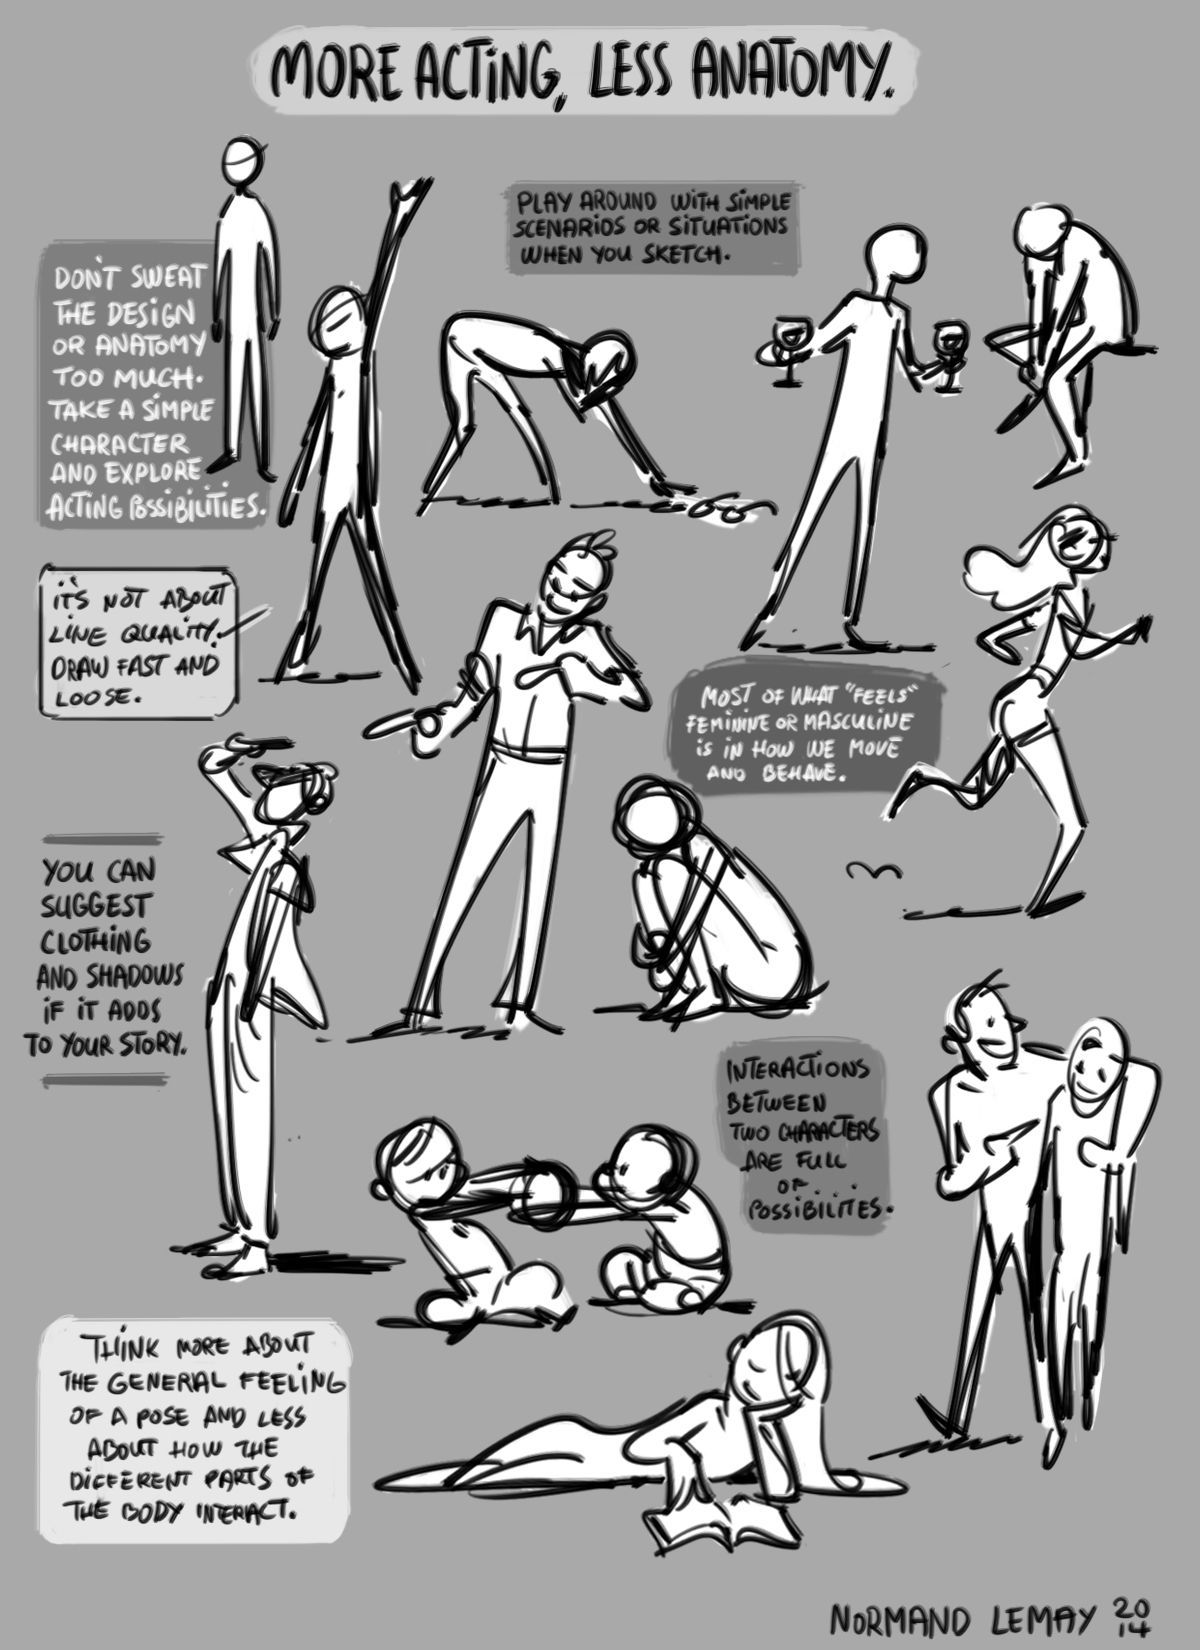 Another Guide To Cartoon Poses This One Focusing On Less Anatomy More Acting For More Expressive Poses Gesture Drawing Art Reference Character Drawing